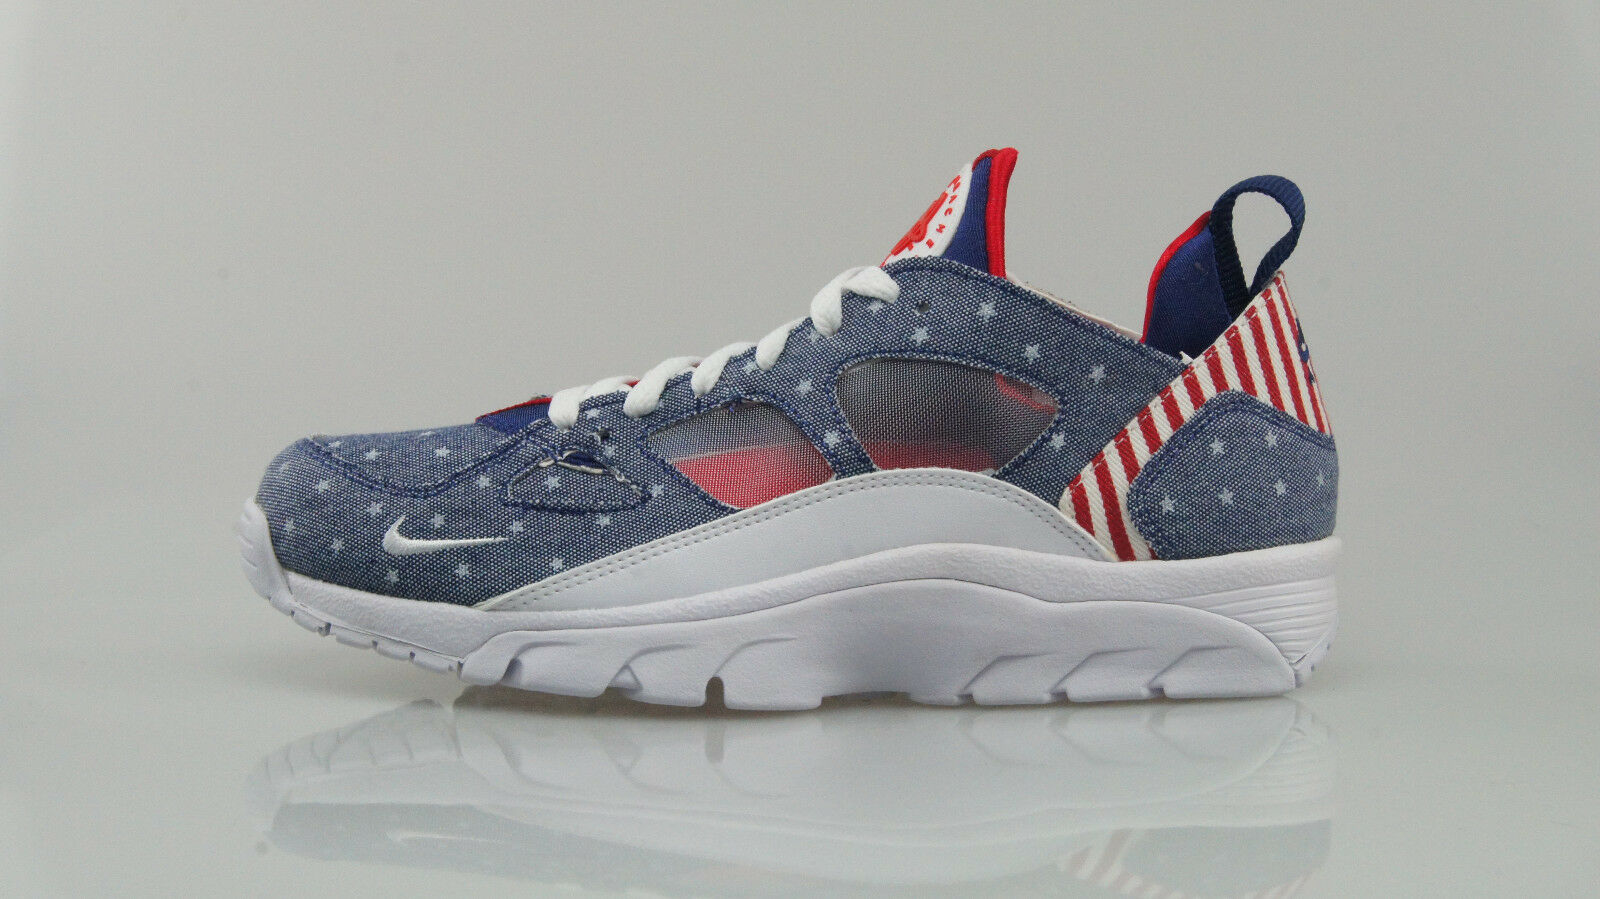 "Zapatos de mujer baratos zapatos de mujer Nike Air Trainer Huarache Low QS ""USA"" Size 41 (8US)"